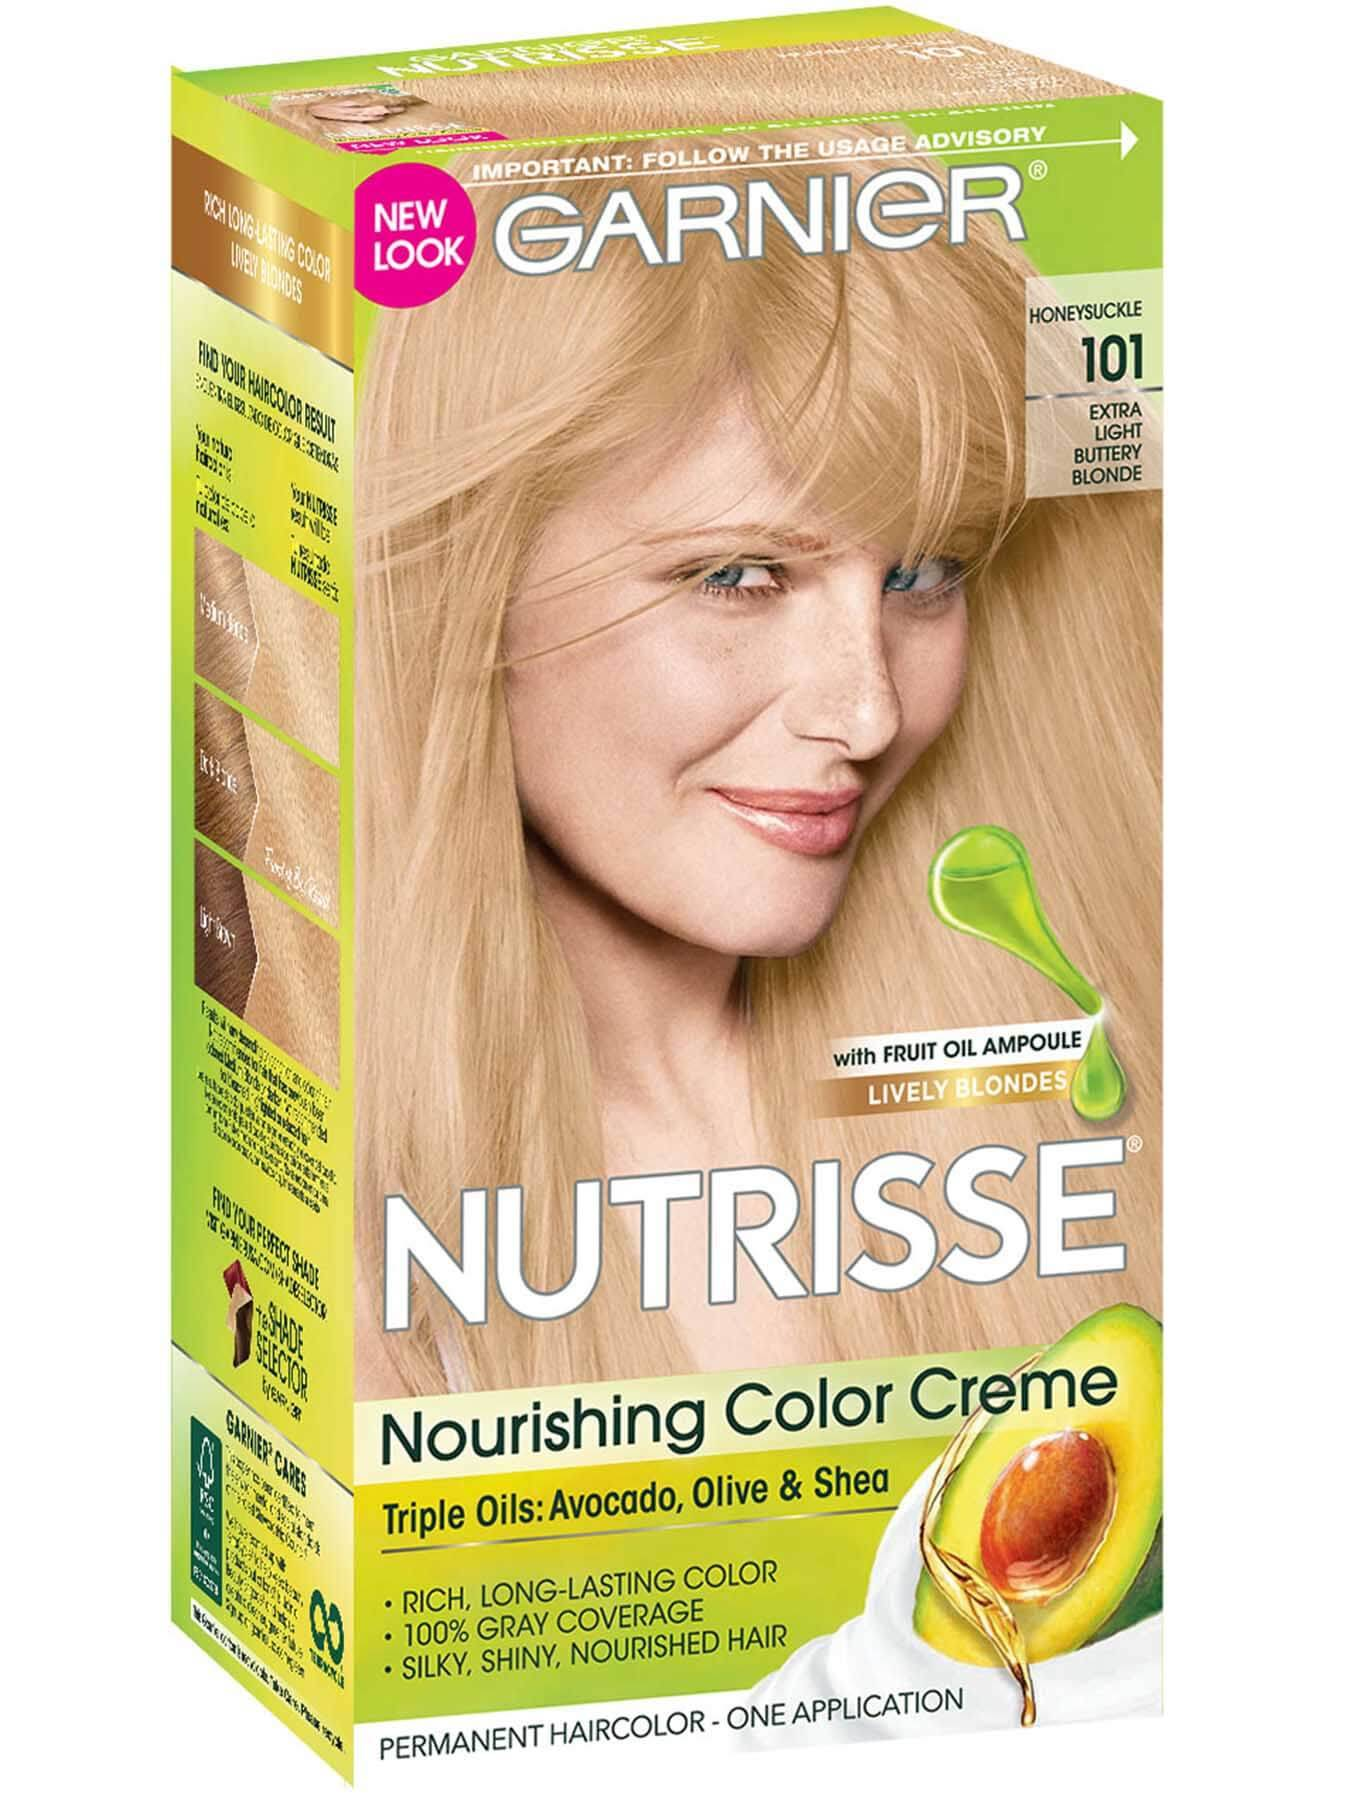 Front view of Nourishing Color Crème 101 - Extra Light Buttery Blonde.